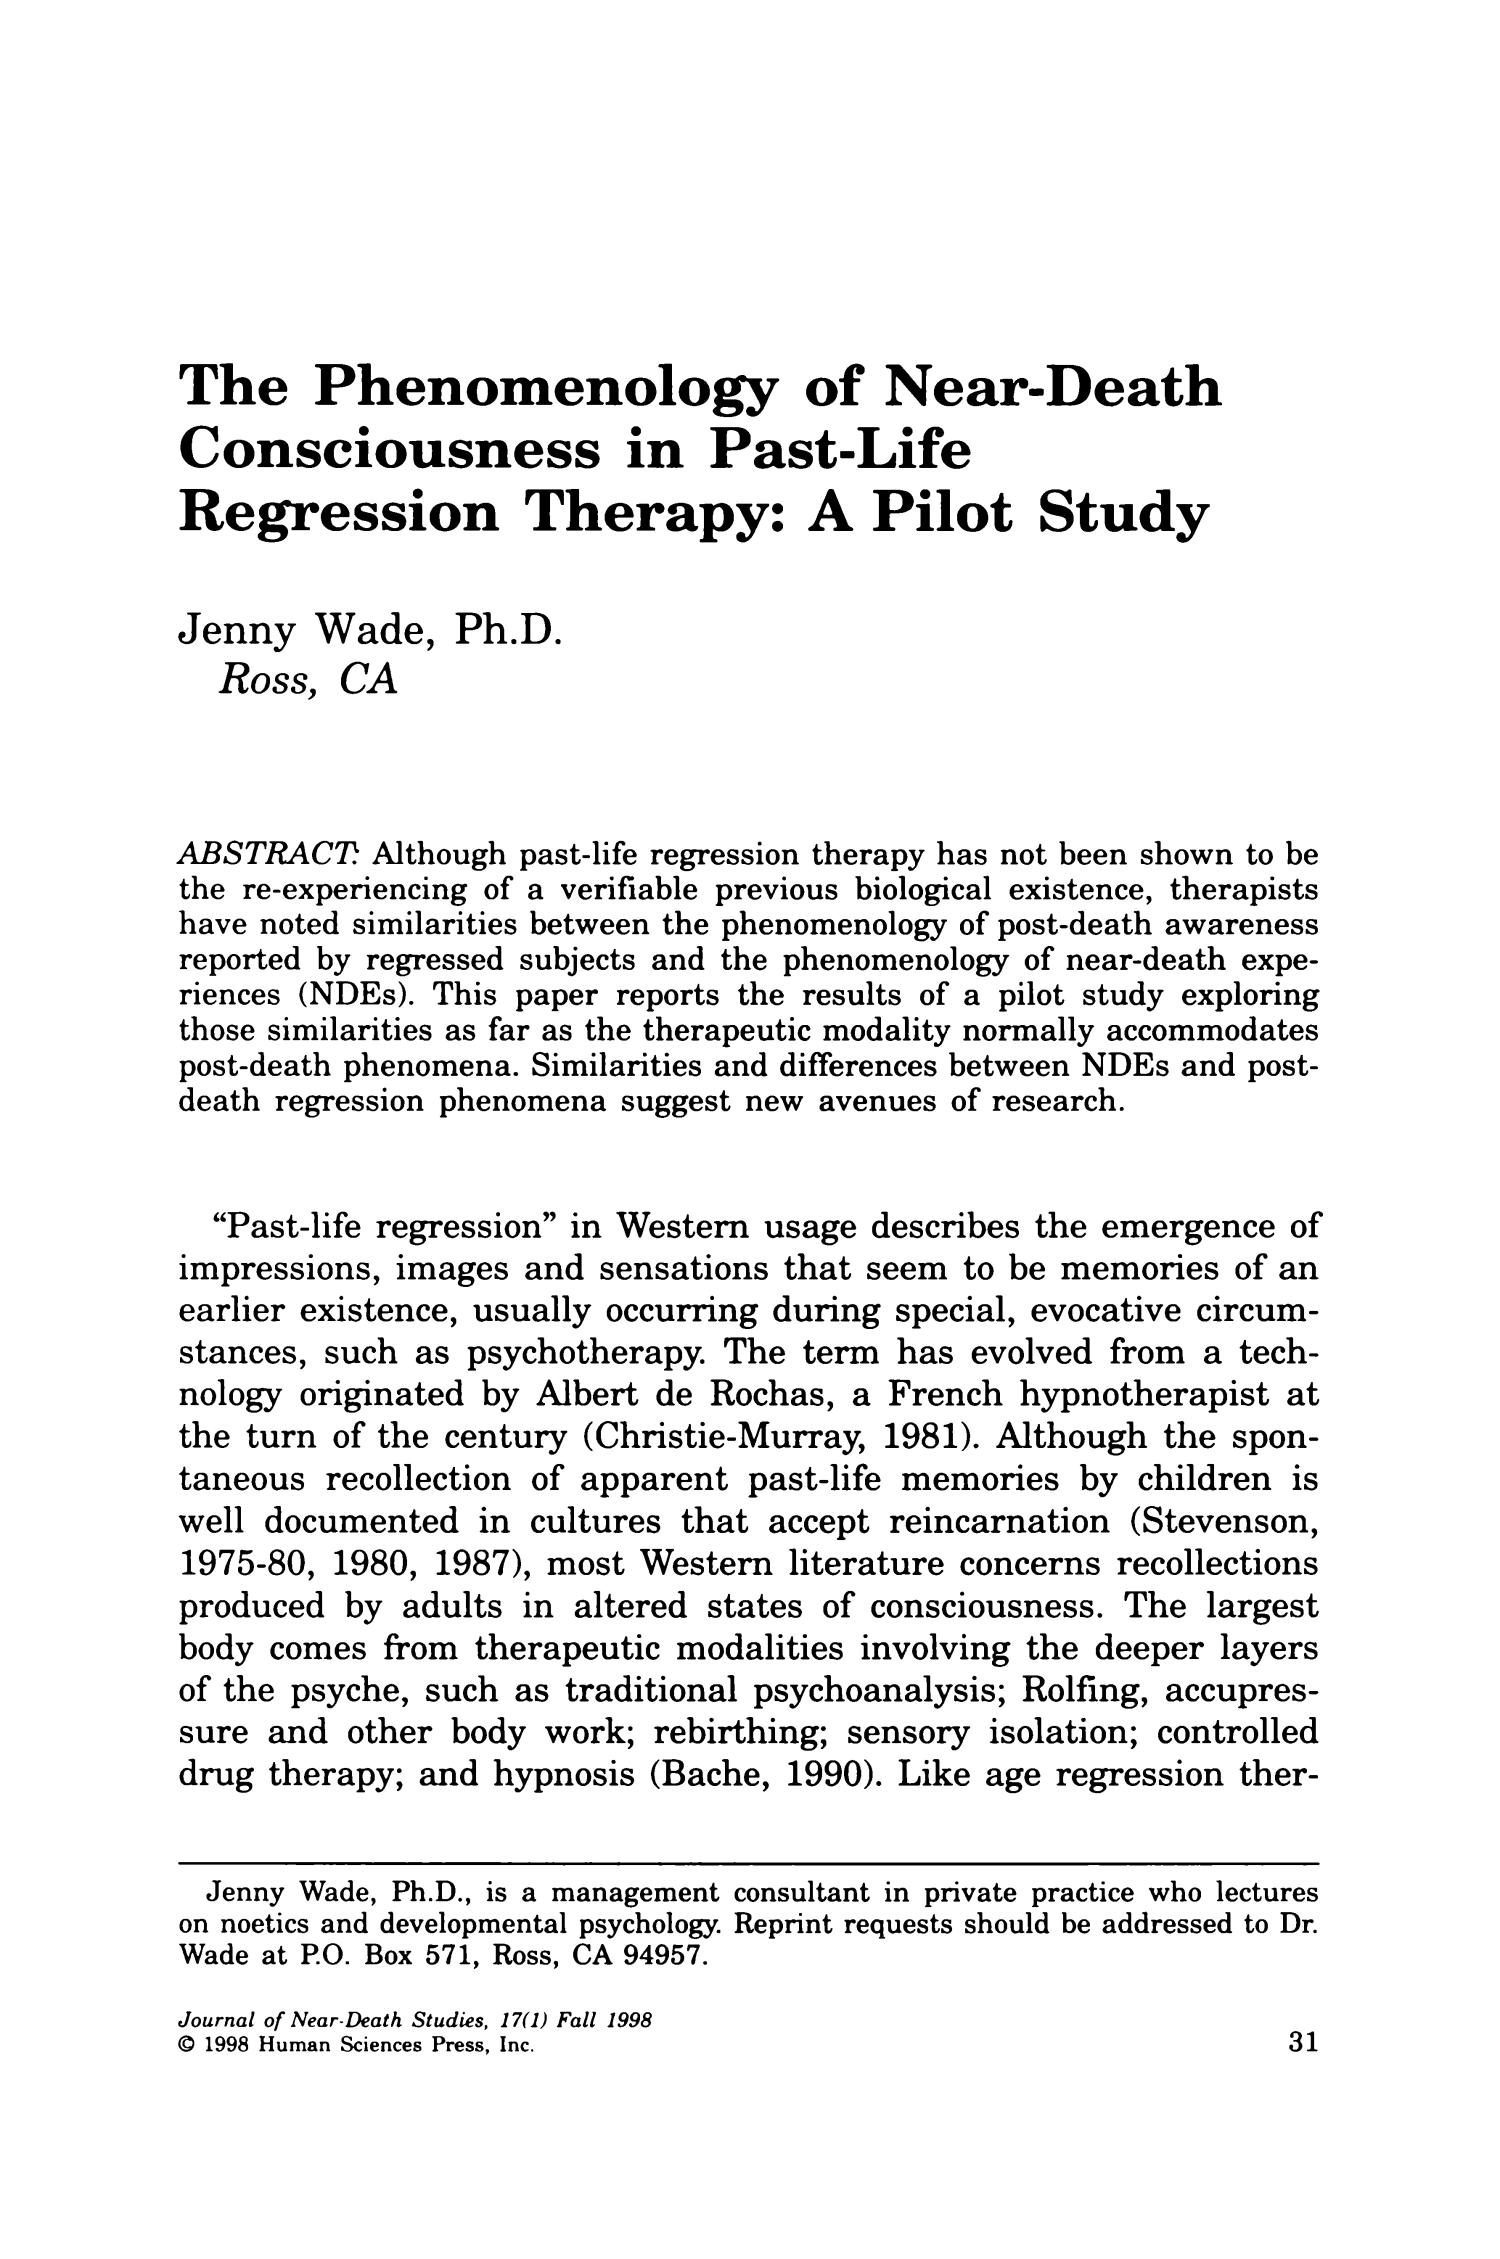 The Phenomenology of Near-Death Consciousness in Past-Life ...